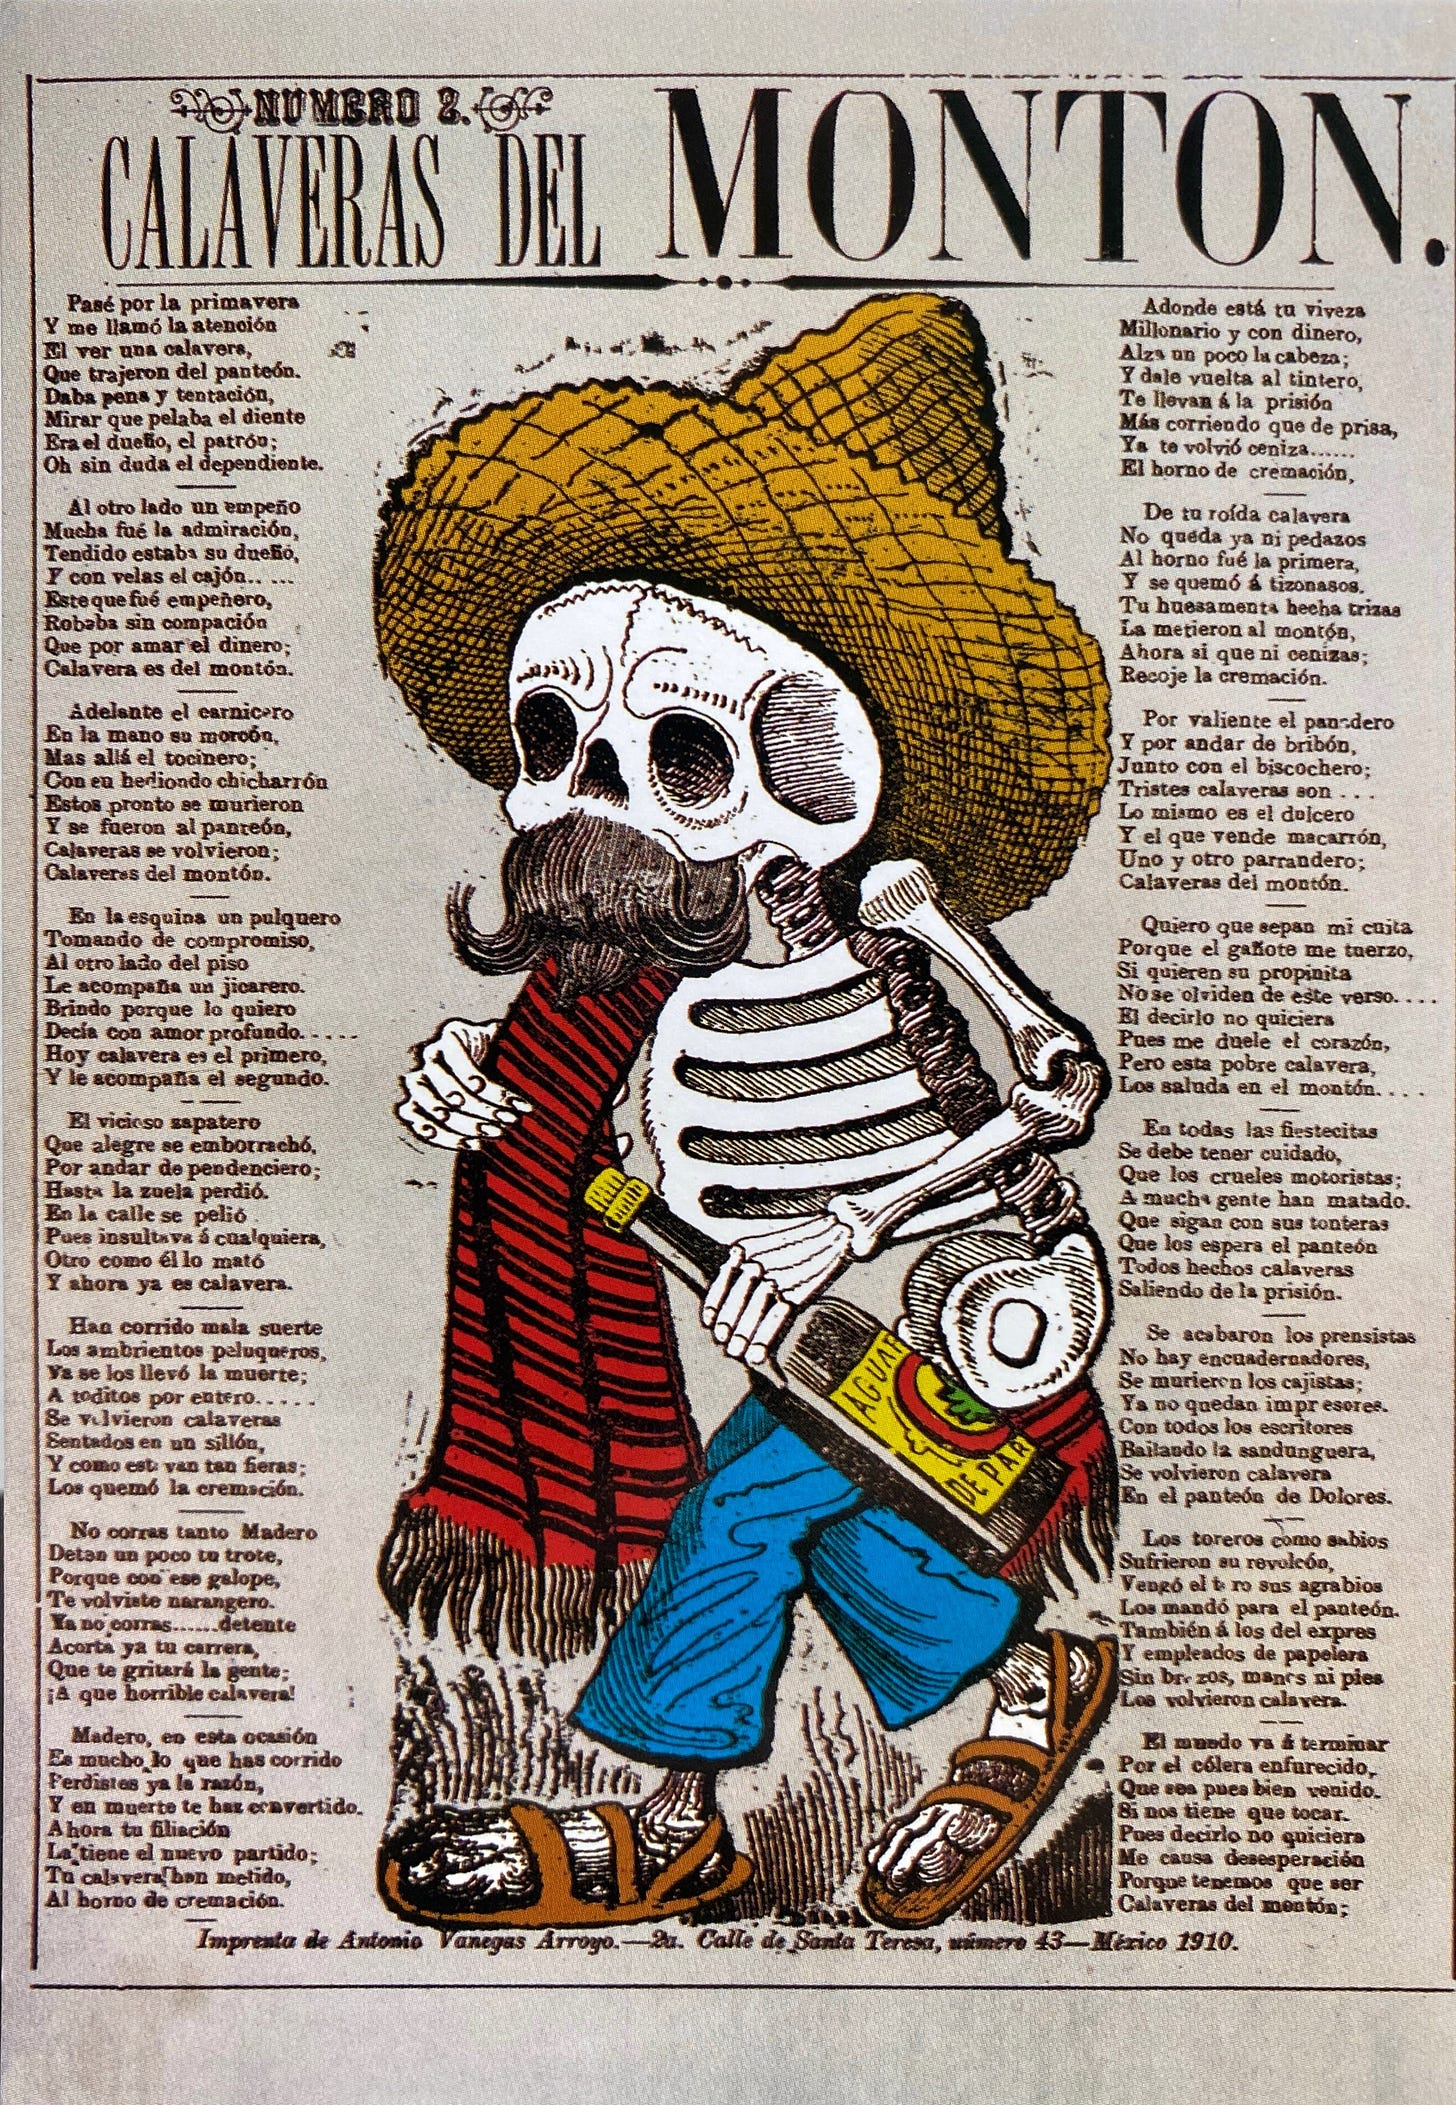 A skeleton wearing a sombrero, a sarape over their right shoulder, pants and open sandals. They have a mustache and carry a bottle of aguardiente in their left hand. It is surrounded by columns of text on both sides, with funny rhymes about death.